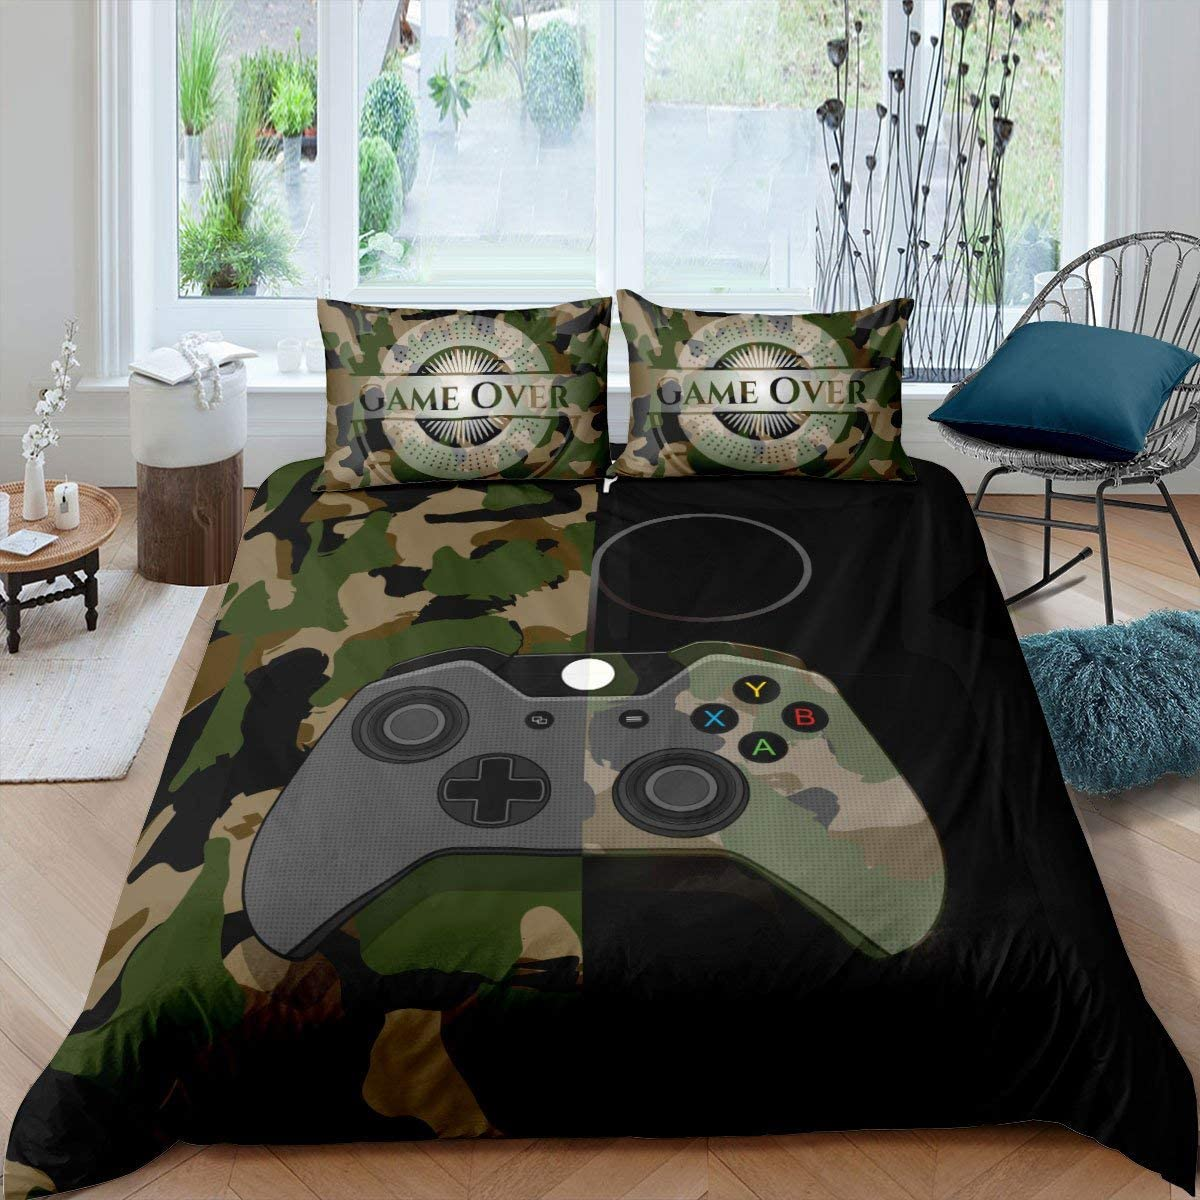 Gamer Bedding Set Teens Boys Camouflage Gamepad Printed Comforter Cover Army Green Video Games Decor Player Gaming Duvet Cover for Adult Girls Kids Camo Game Console Pattern Soft Bespread, Queen Size